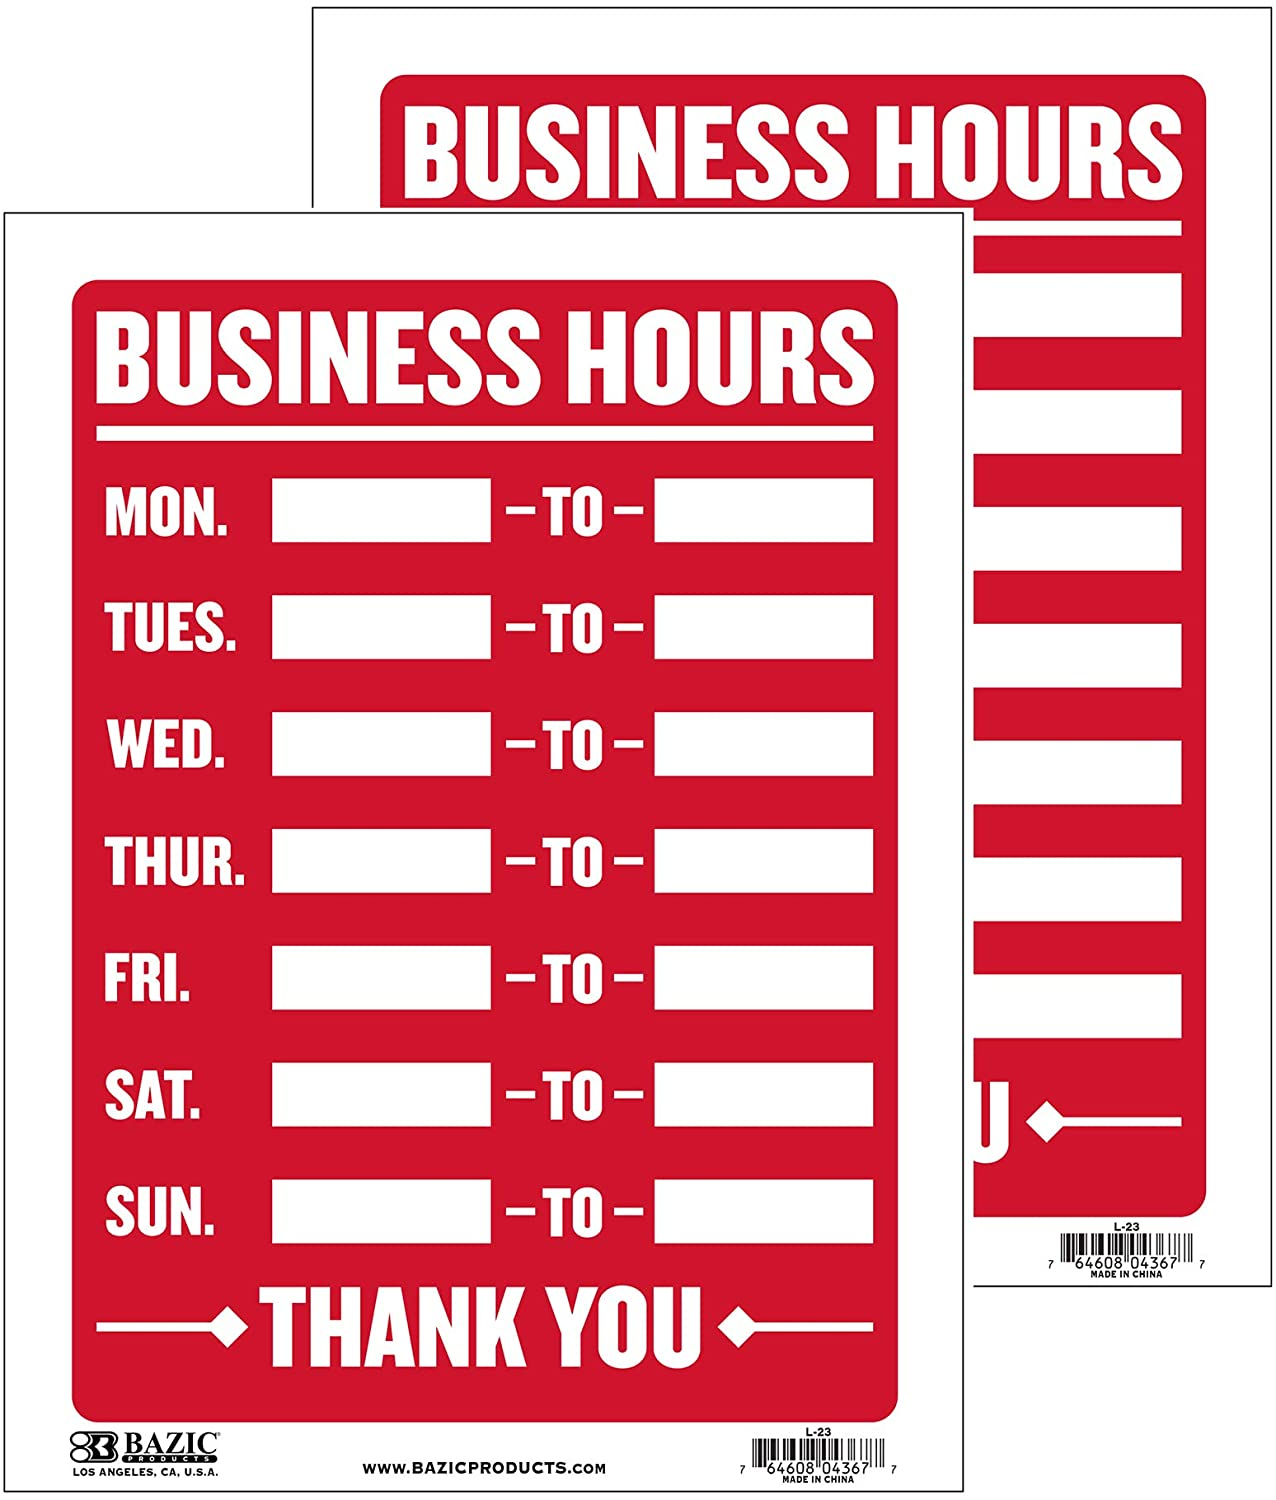 BAZIC 12 X 16 Business Hours Sign, Open Closed Signs for Business Store Office Door Window Restaurants Bars Retail Salon Shops, 2-Pack